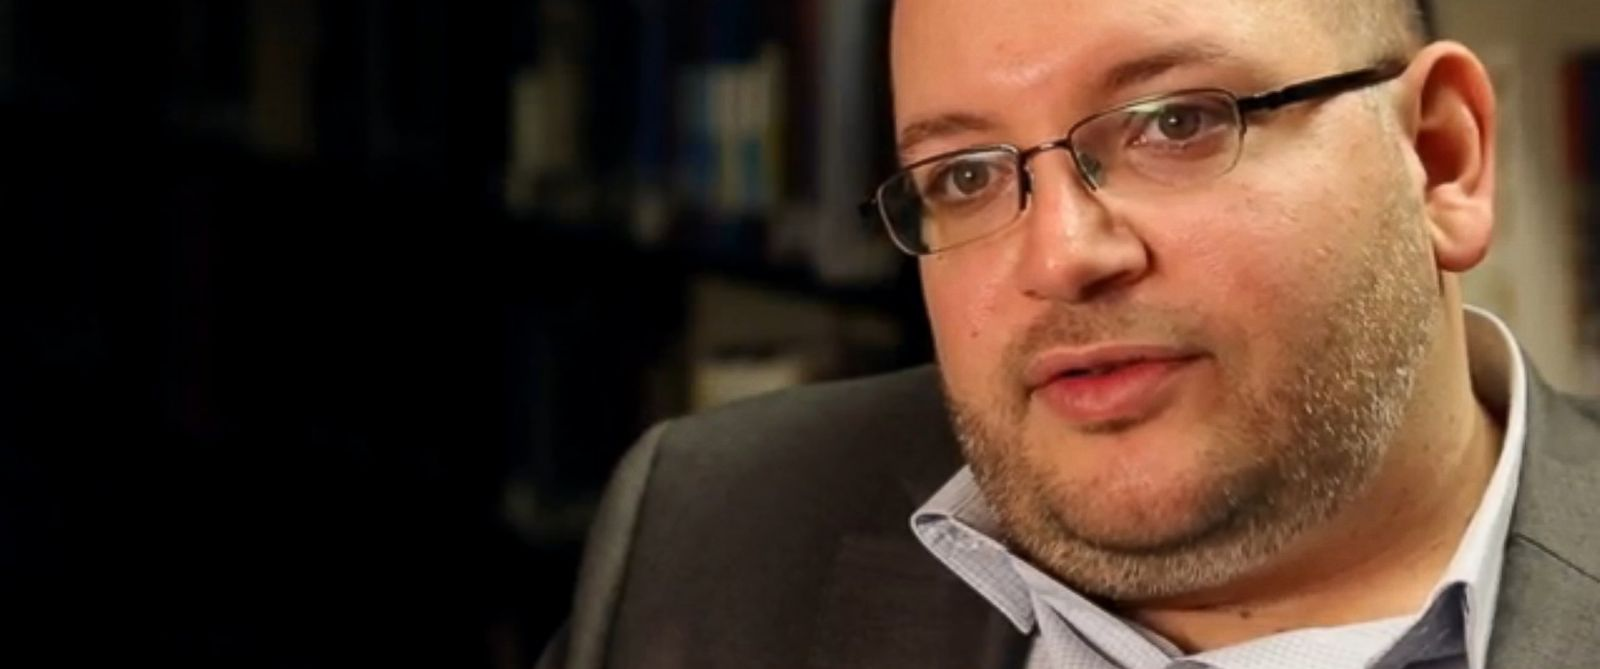 PHOTO: This file photo shows Jason Rezaian at The Washington Post, Nov. 6, 2013 in Washington.